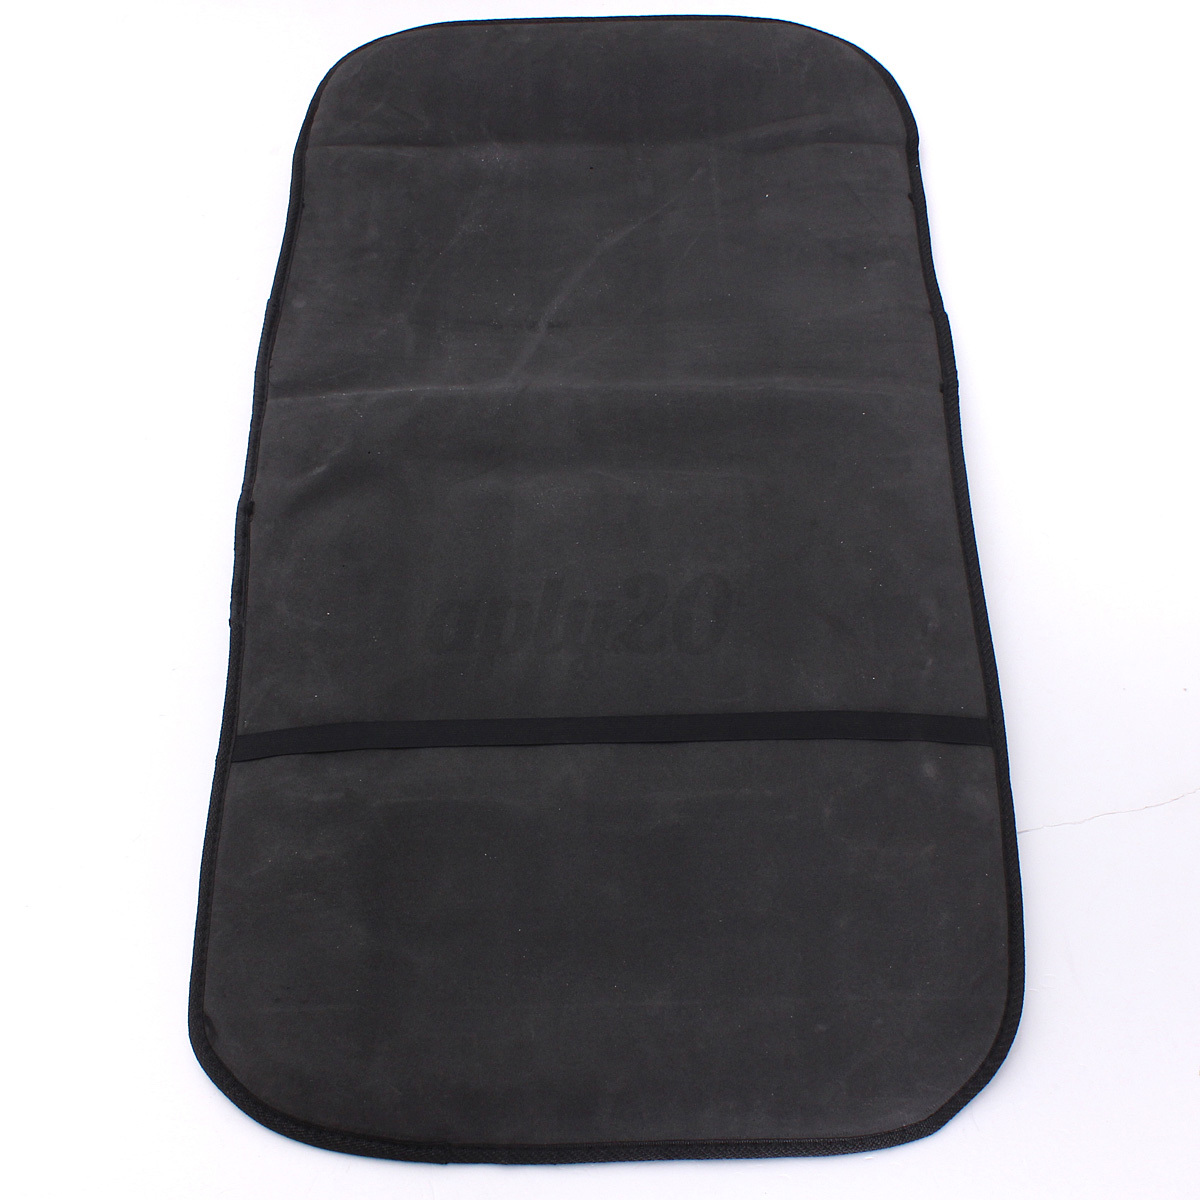 leather chair covers the best protection chairs dining room back support seat cover cushion massage car